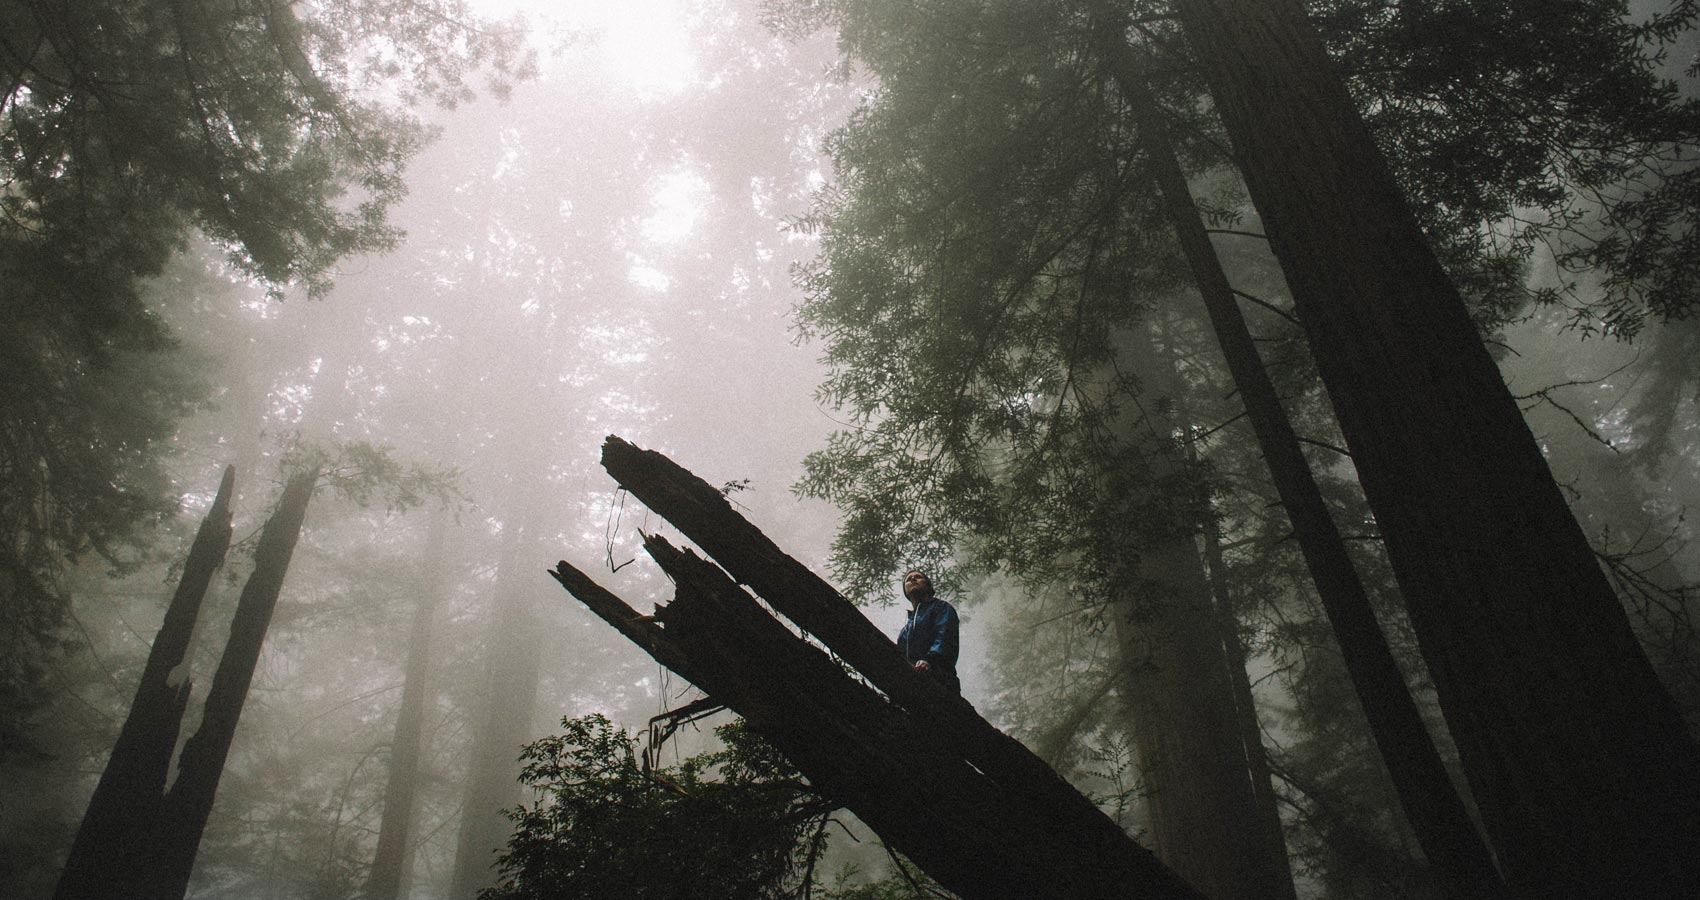 Trees, poetry written by S.D. Kilmer at Spillwords.com